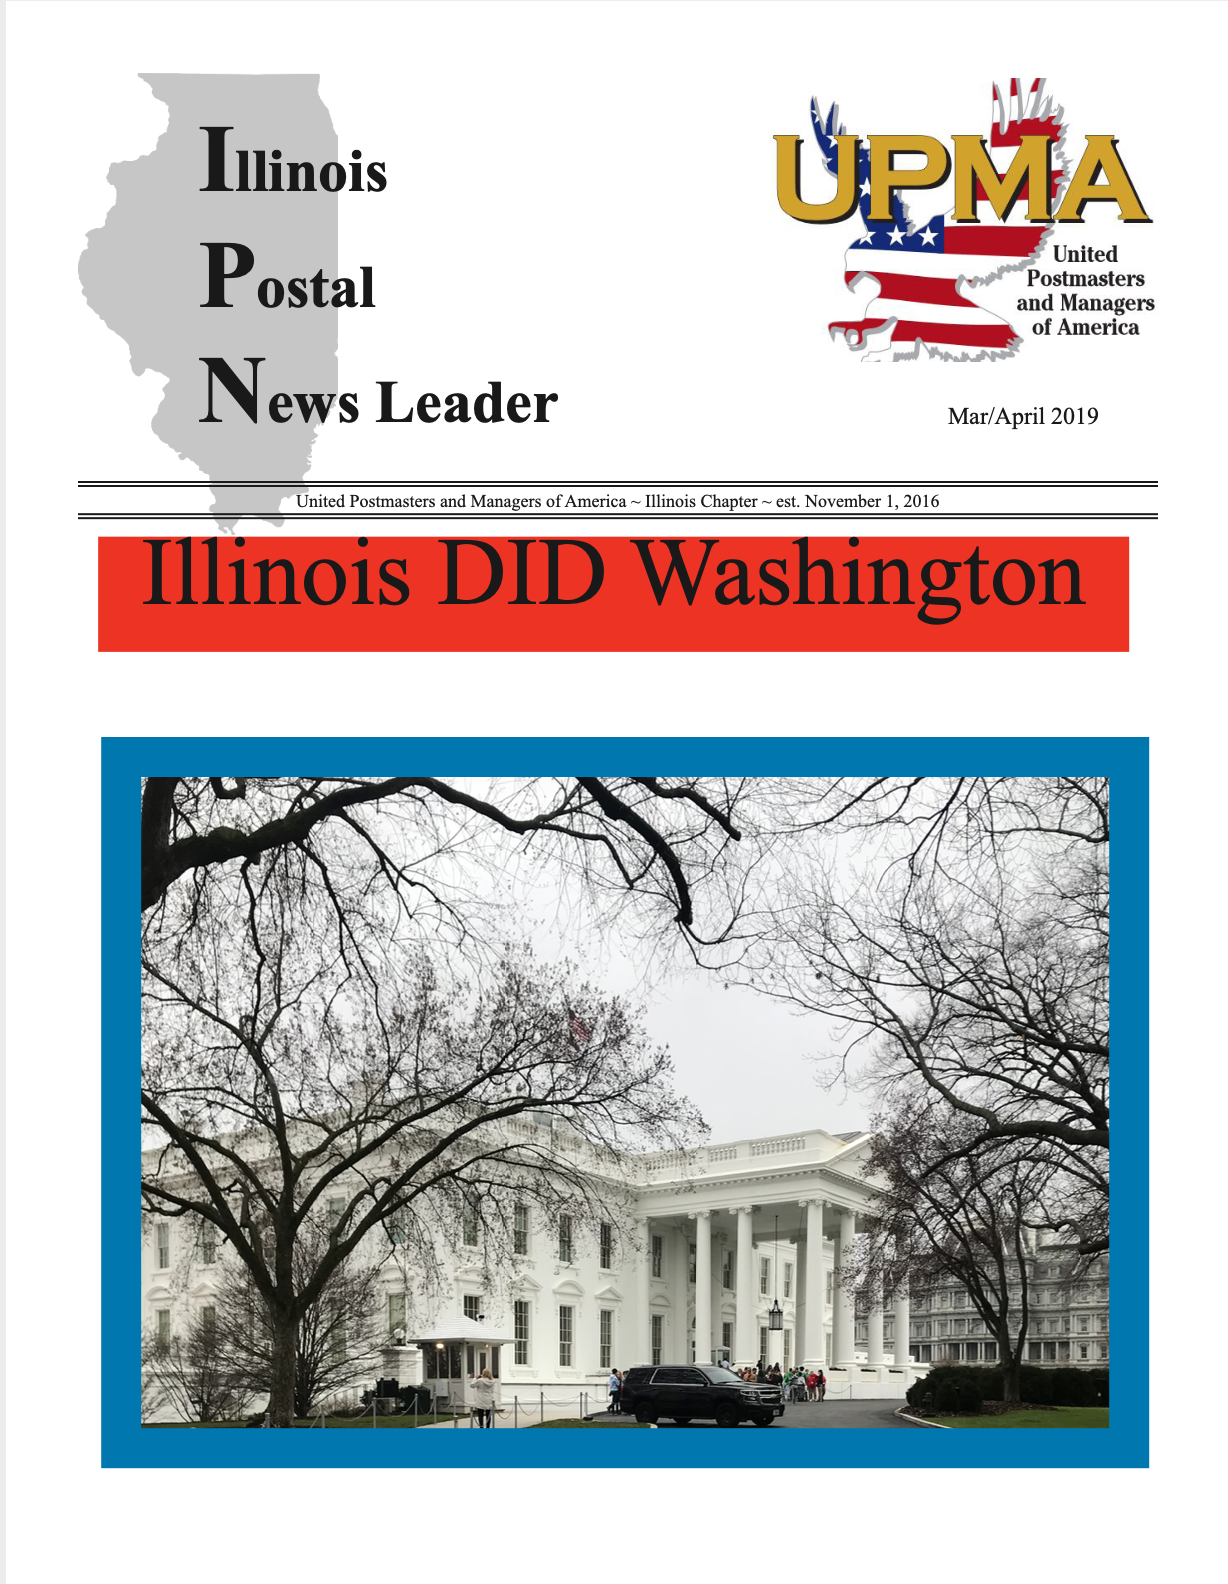 UPMA April 2020 Newsletter Cover with a picture of the white house